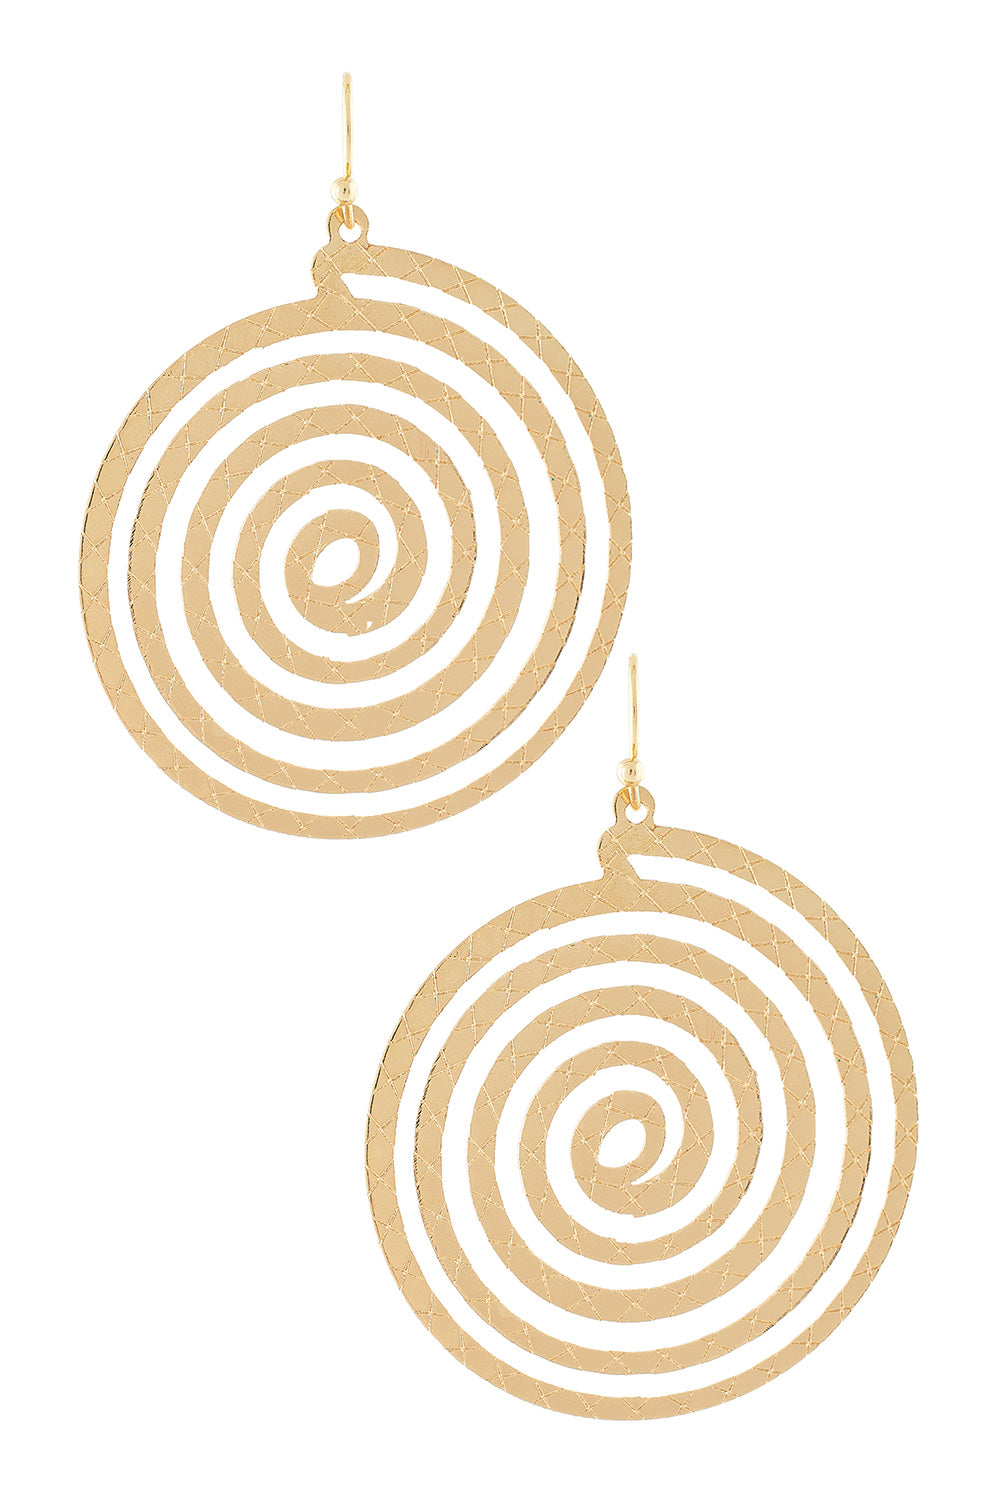 Type 1 Spiral Earrings